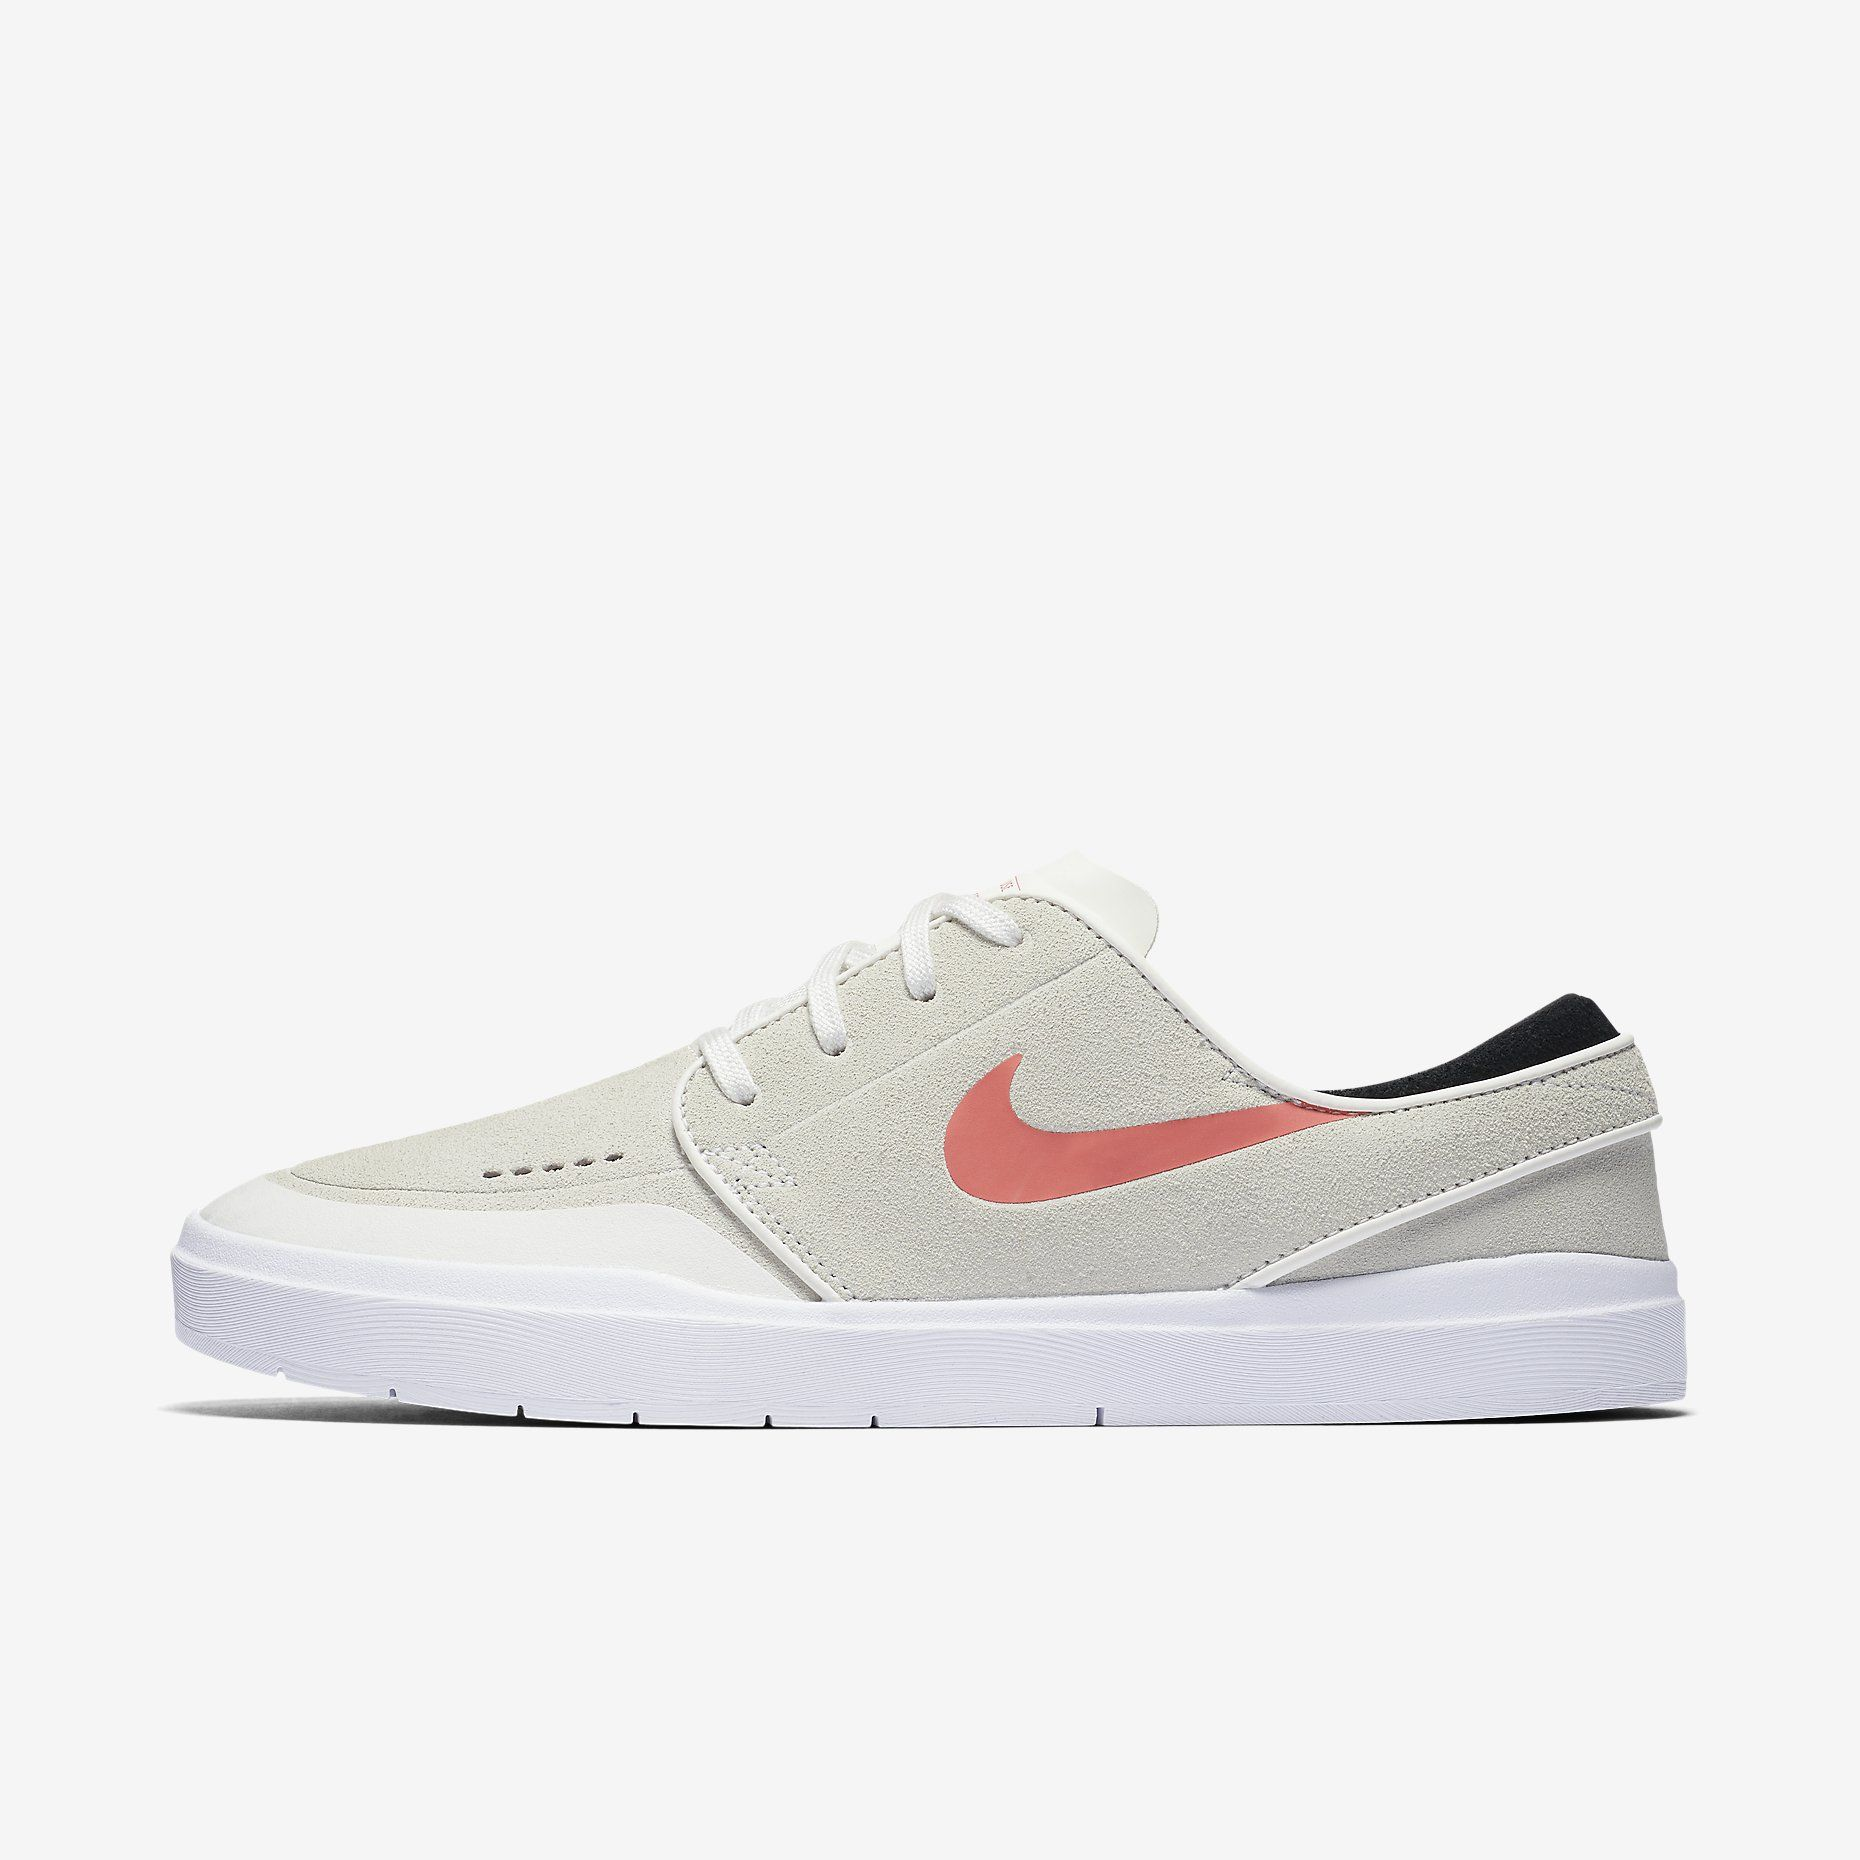 cheaper 8adc4 20ace Nike SB Stefan Janoski Hyperfeel XT Men s Skateboarding Shoe  Summit  White Black White Ember Glow